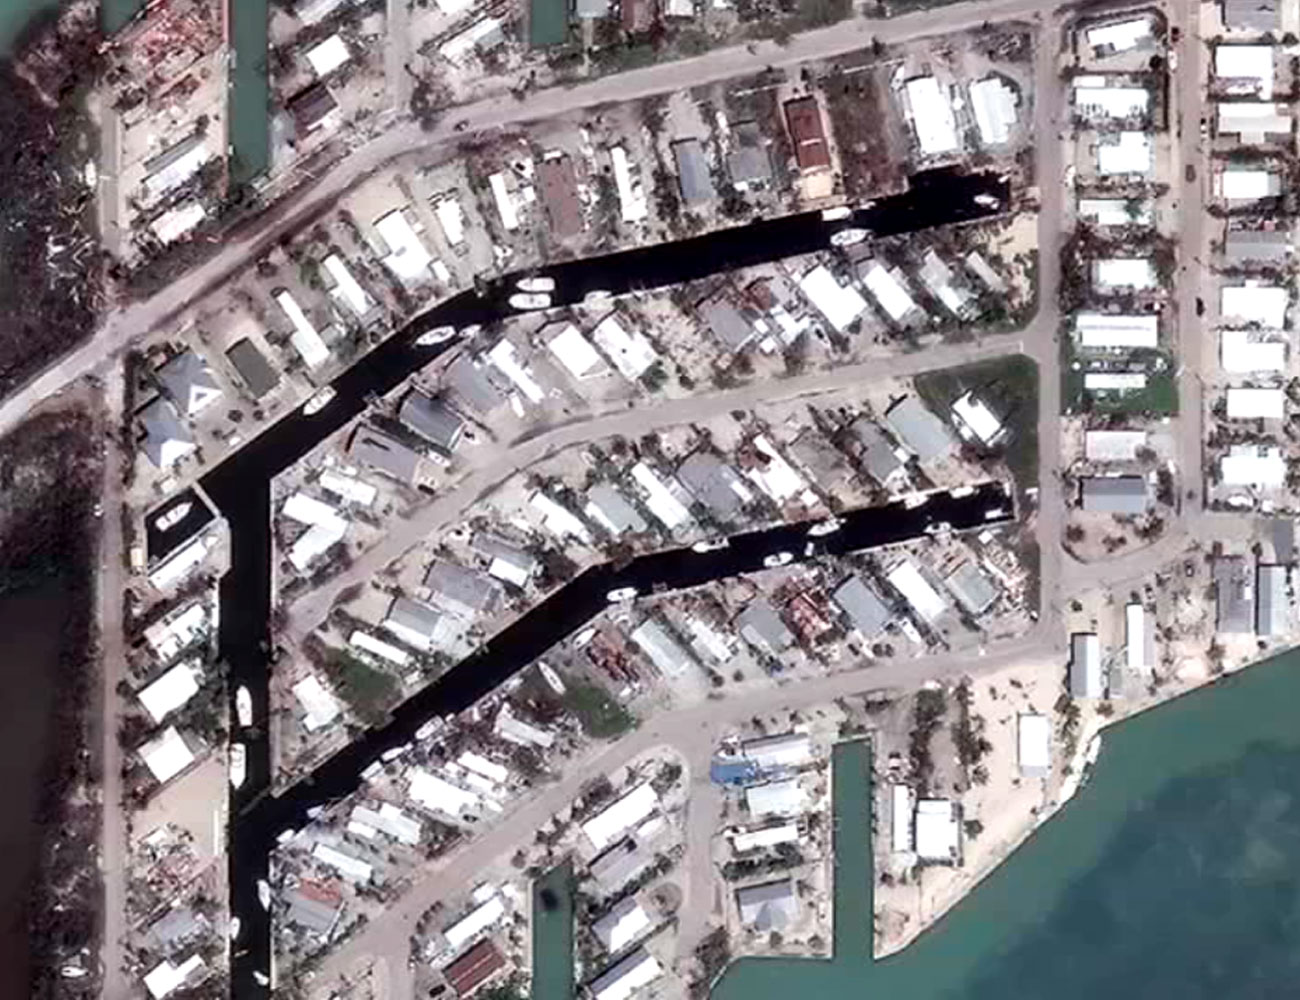 <div class='meta'><div class='origin-logo' data-origin='none'></div><span class='caption-text' data-credit='DigitalGlobe'>Ginger Key, Florida - September 11, 2017</span></div>